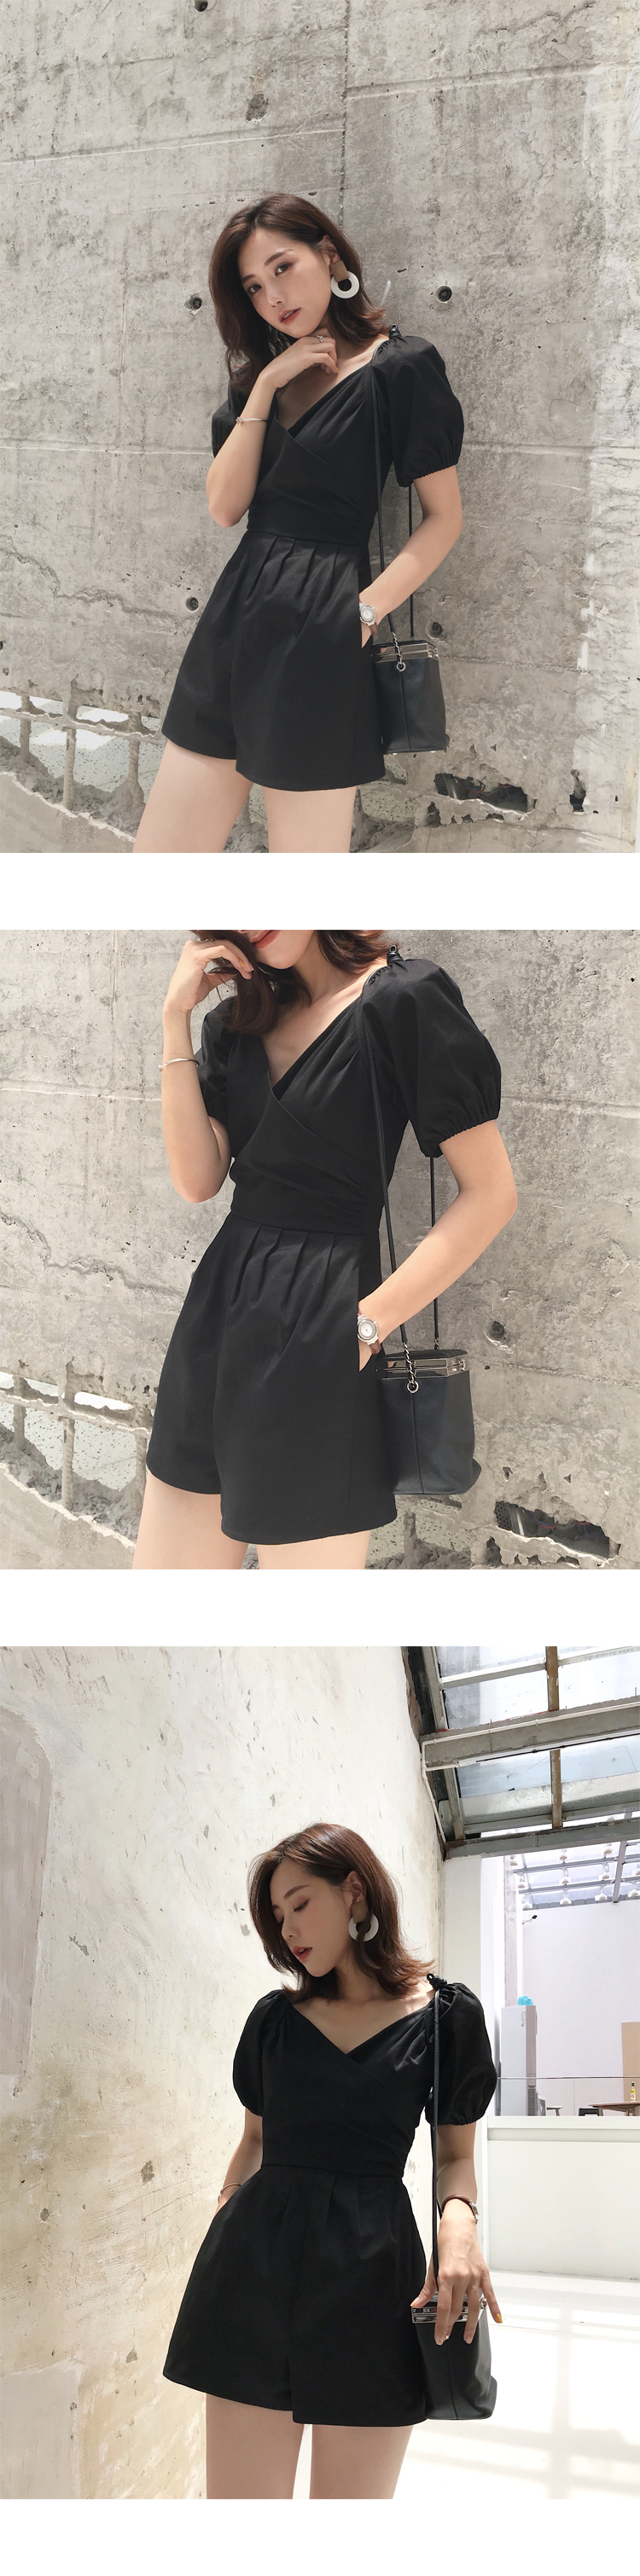 Ha10fe60fd00c4f4bbe828f1c1eebd39aN - LLZACOOSH Runway Women Solid Rompers Summer Short Puff Sleeve Casual Playsuits Holiday Short Beach Holiday Jumpsuits